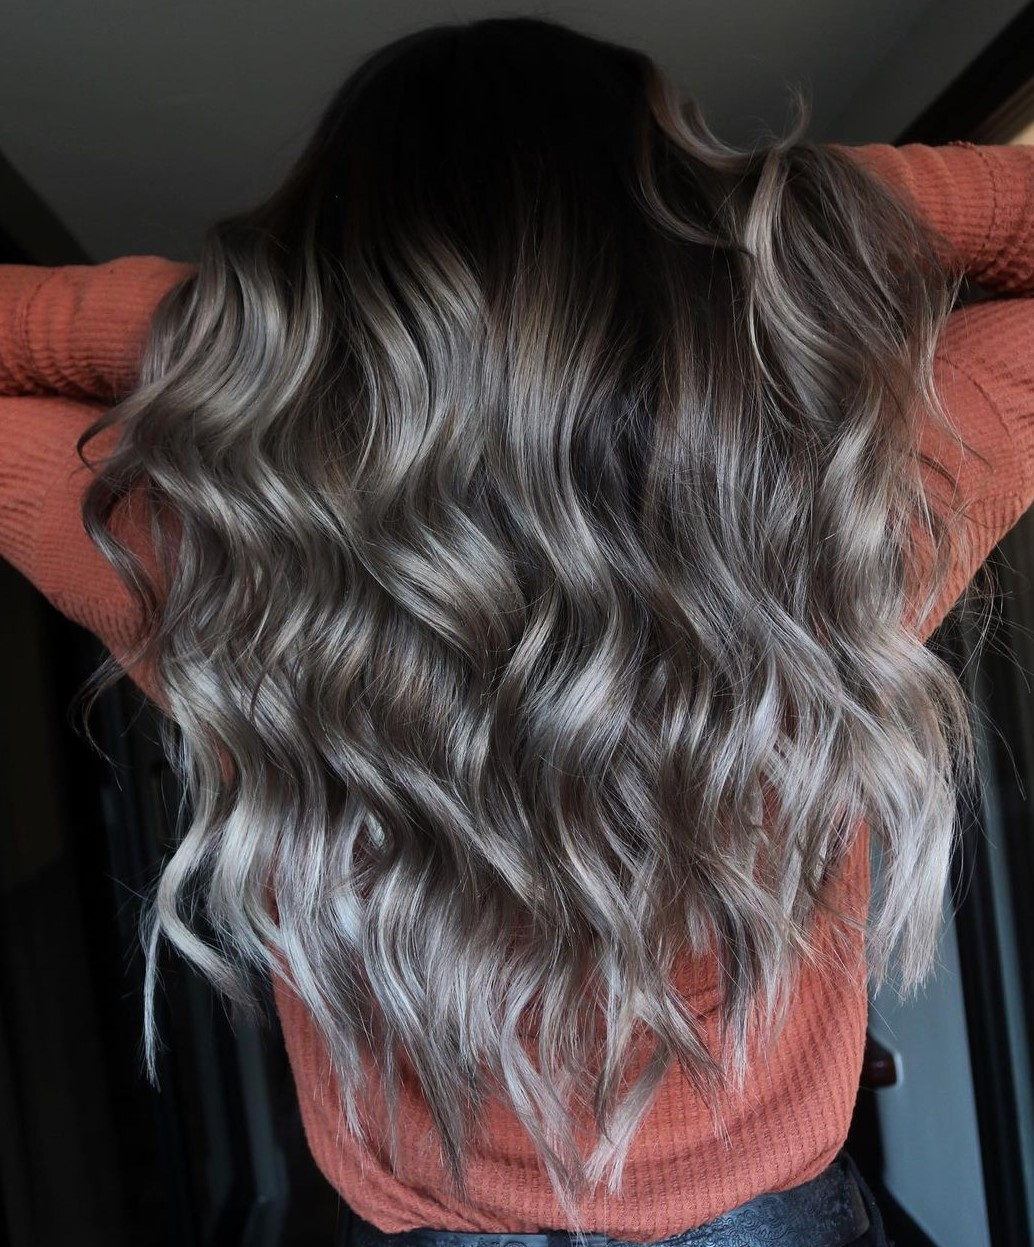 Brunette Curls with Gray Highlights